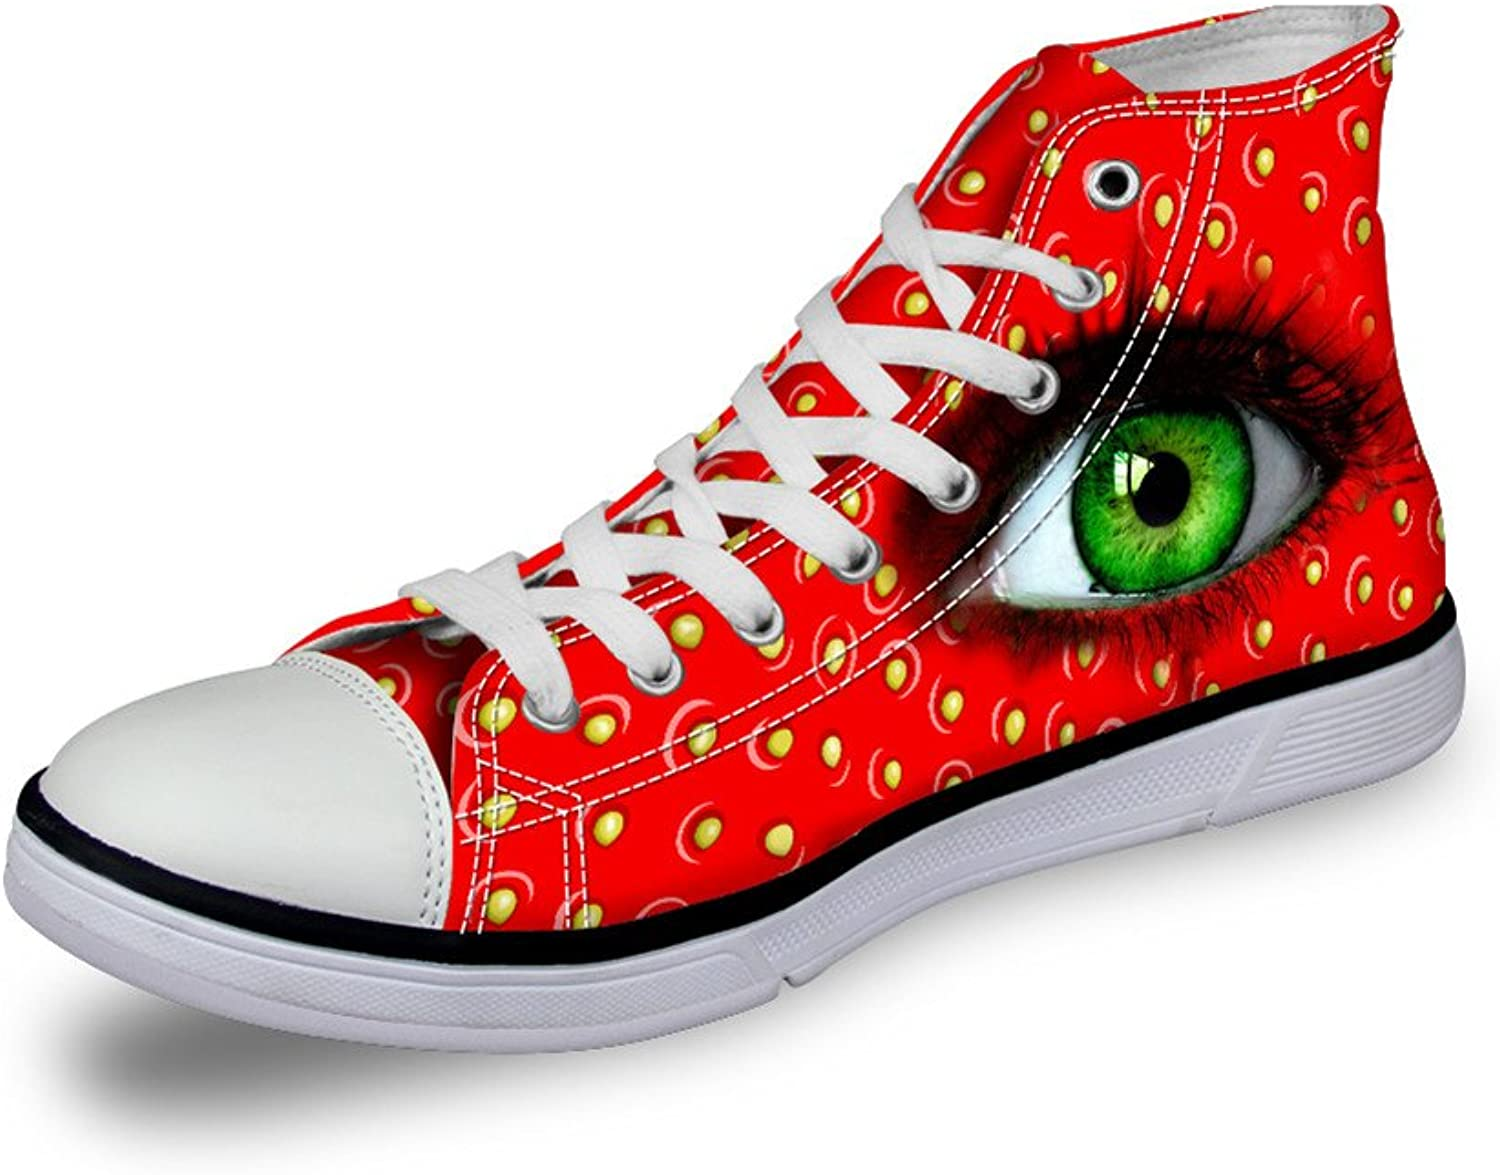 Chaqlin Designer Women Canvas shoes Vivid Pupil Eyes High Top Flat Sneakers